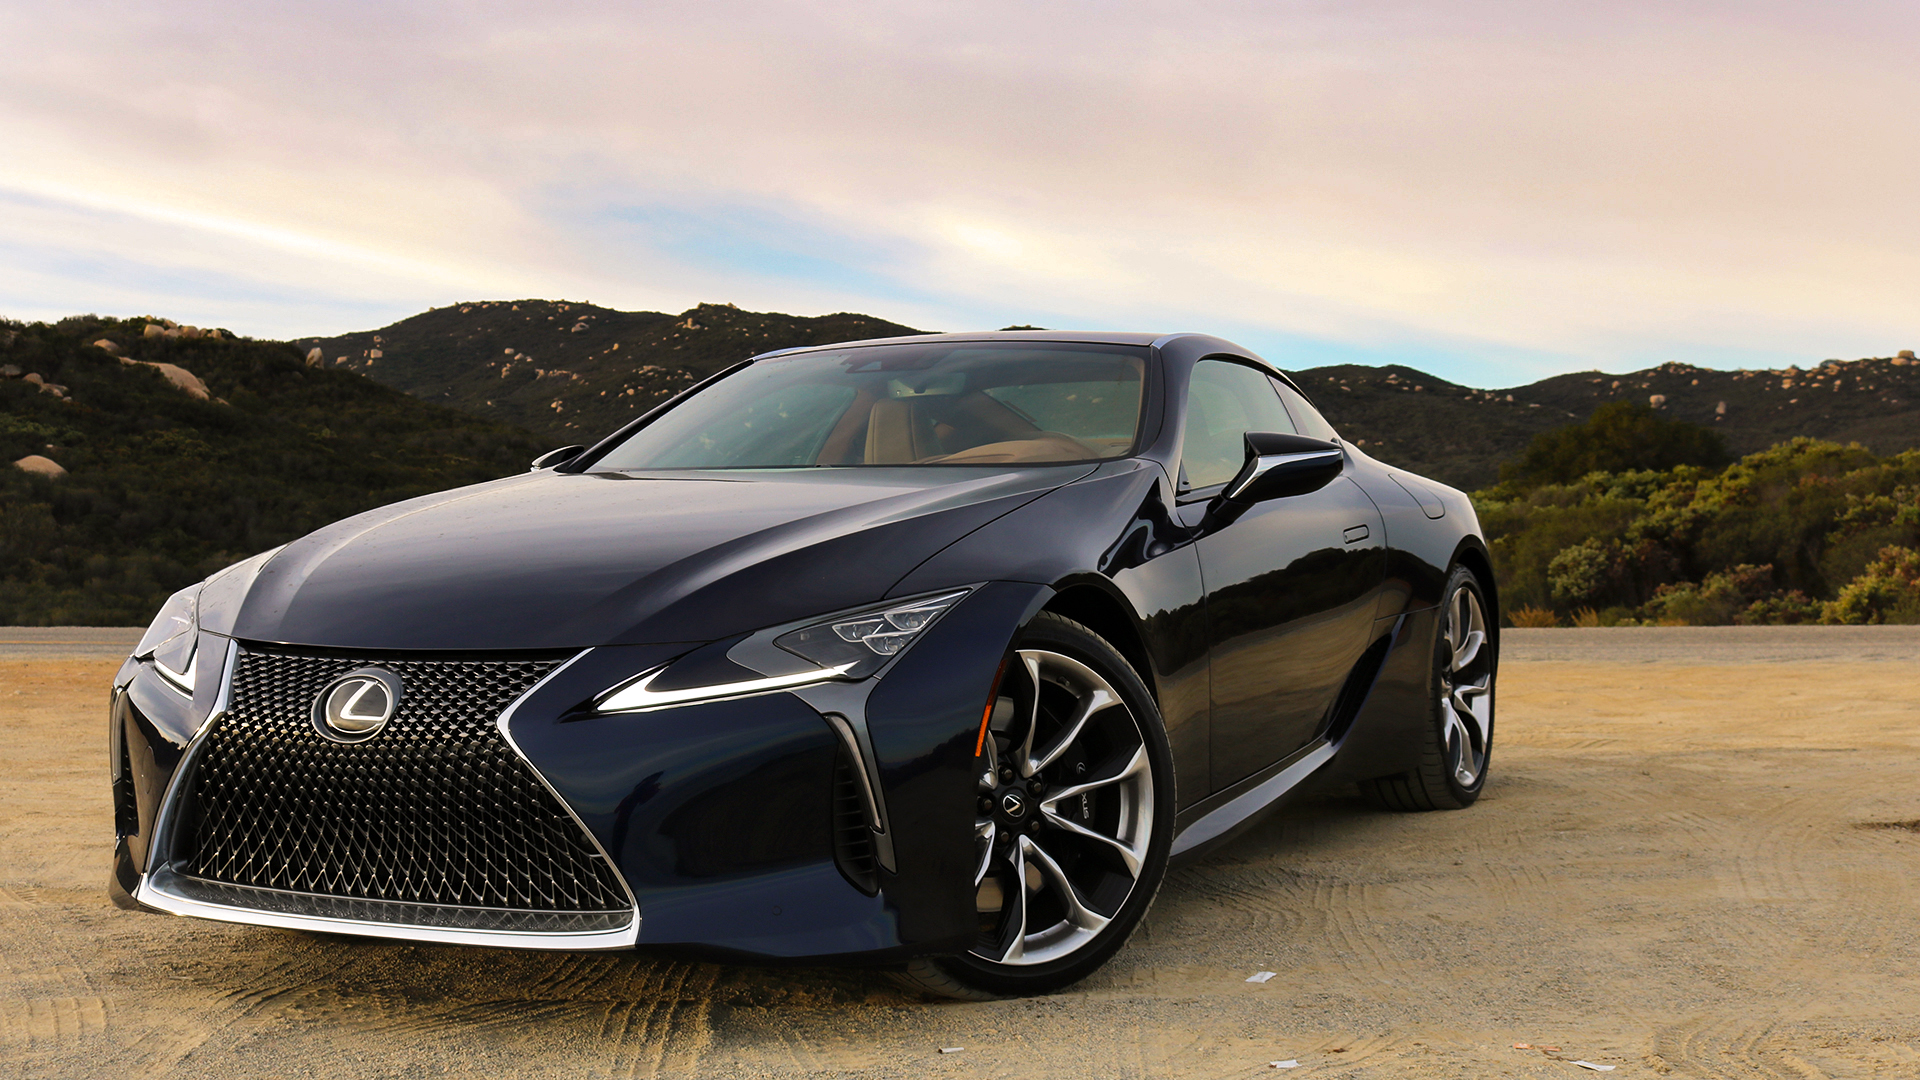 2018 Lexus Lc 500 Review A Sci Fi Stunner For The Luxurious Long